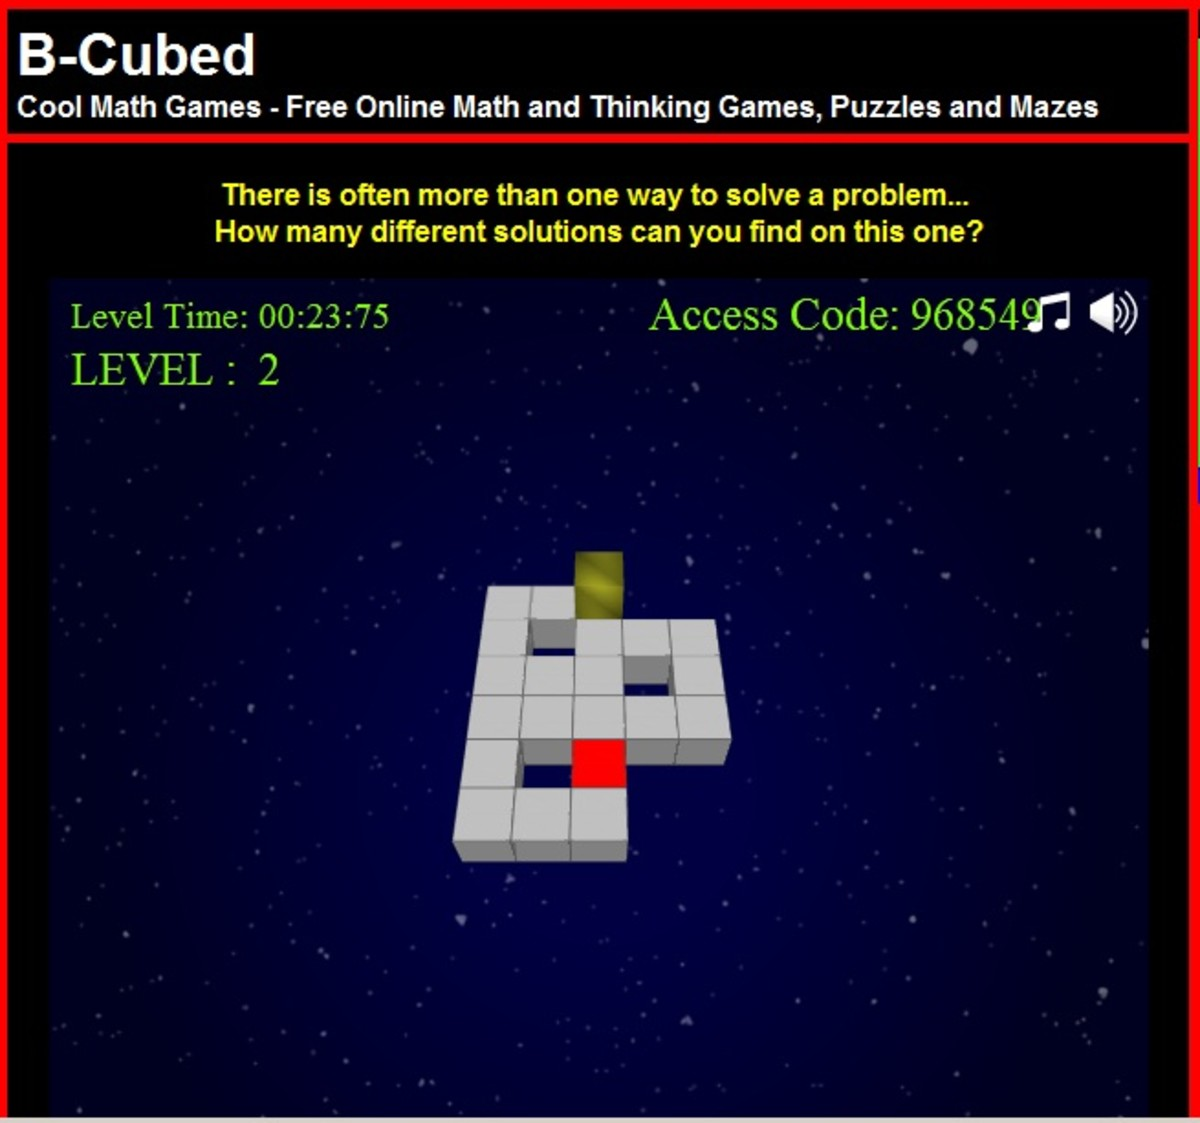 Download this cool math games site picture